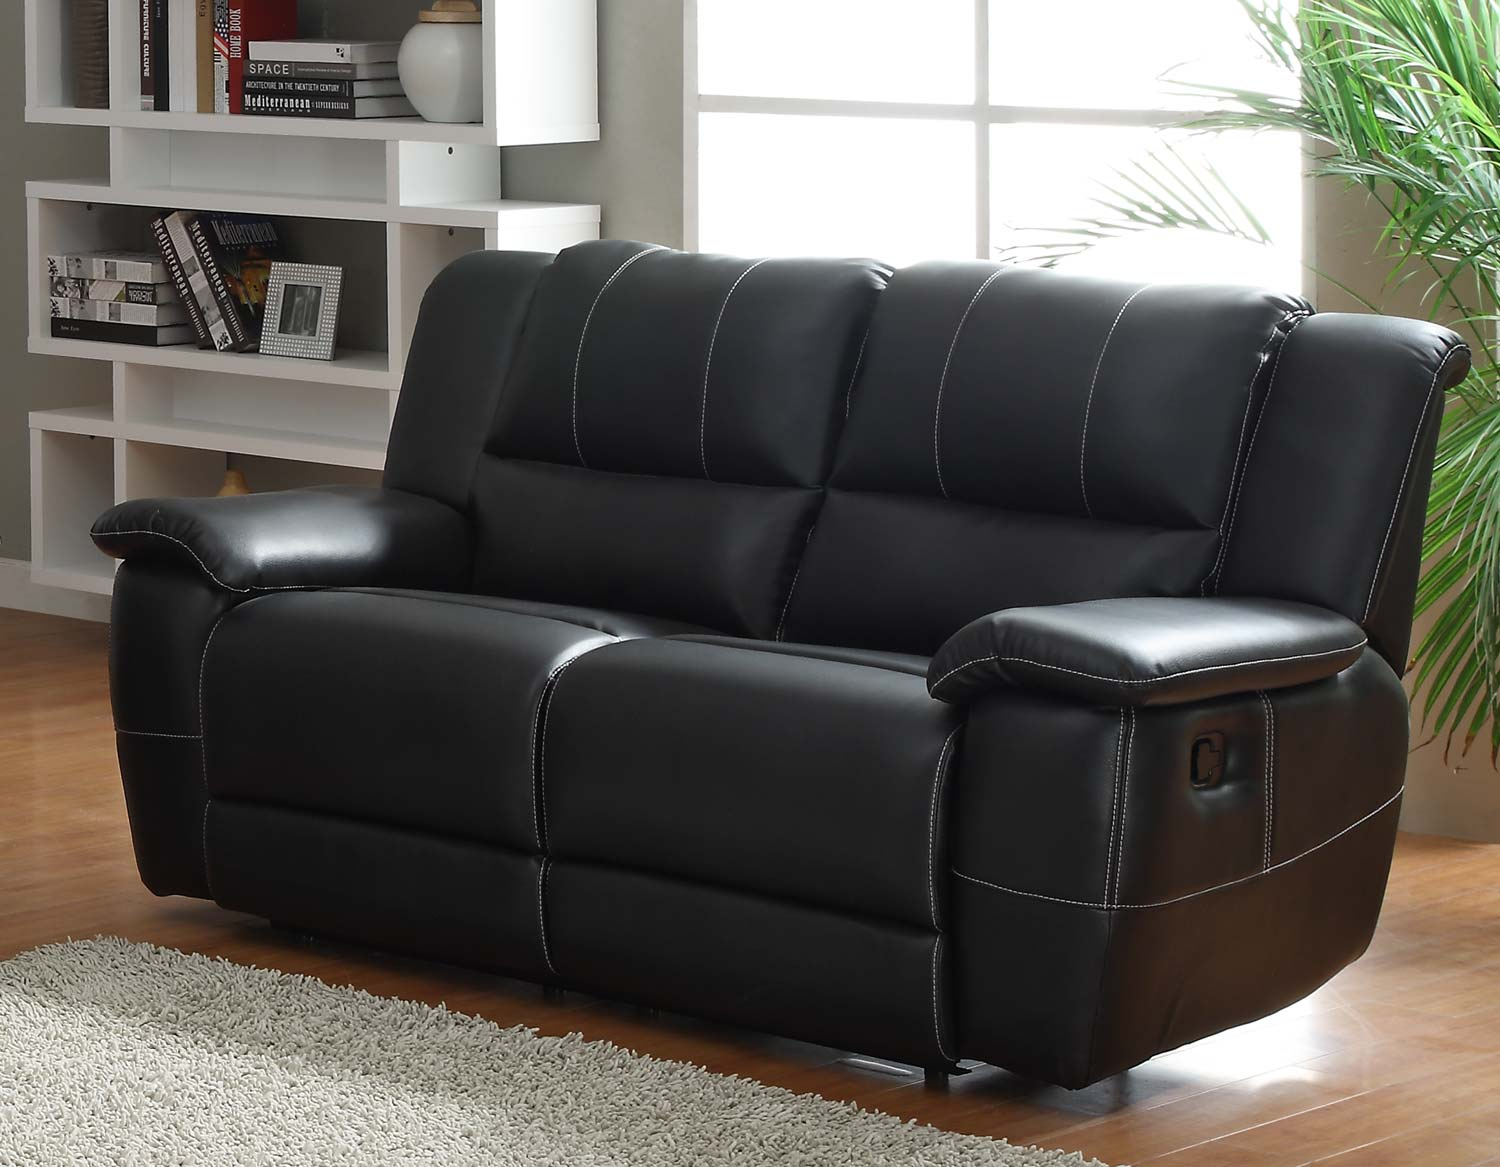 Homelegance cantrell reclining sofa set black bonded leather match u9778blk 3 Leather sofa and loveseat recliner